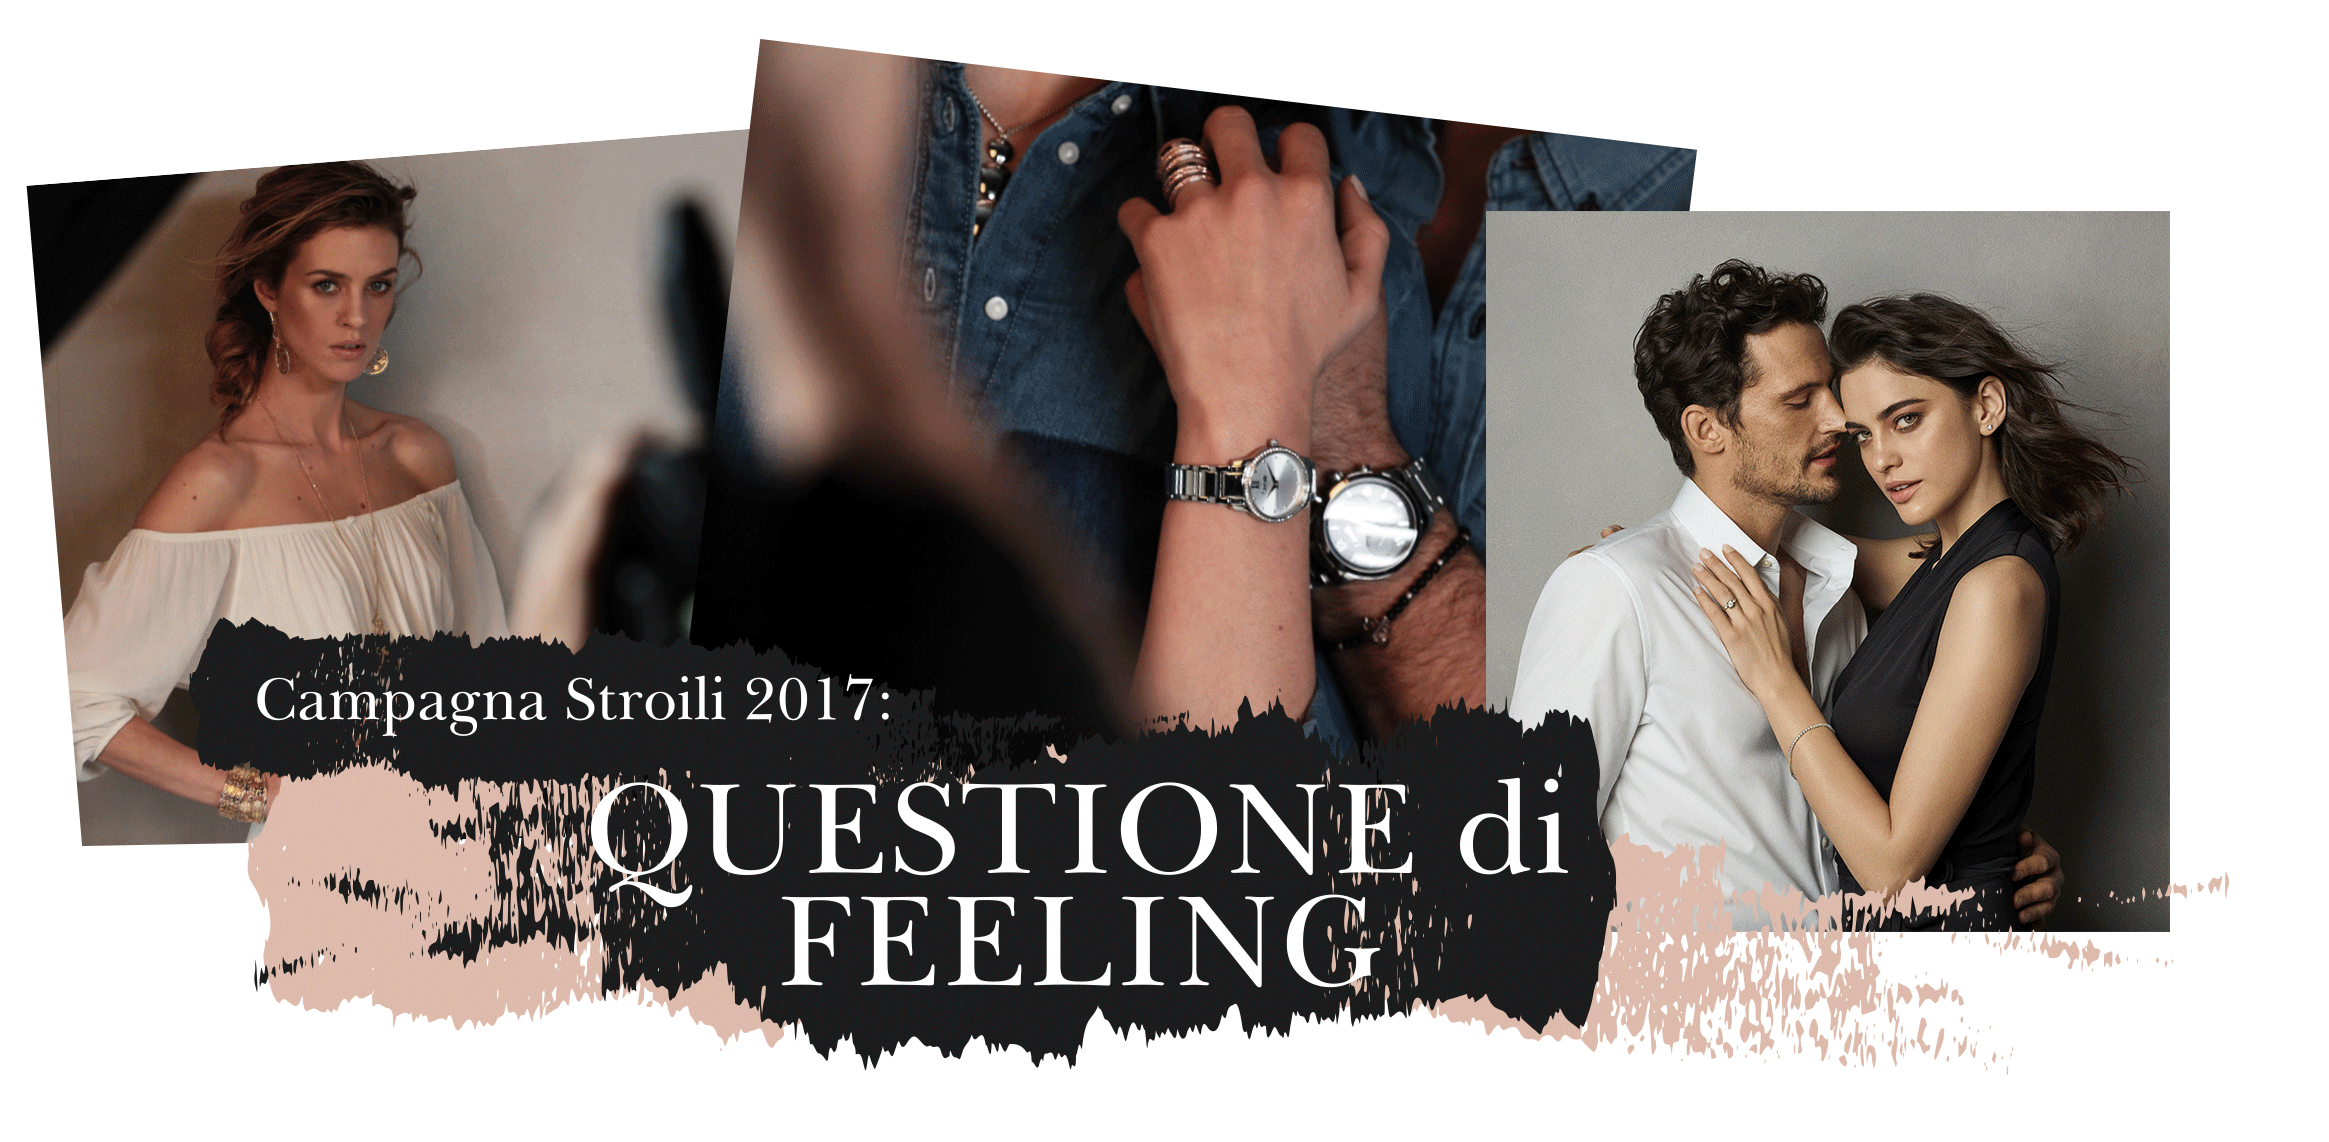 Stroili 2017 campaign: a matter of feeling